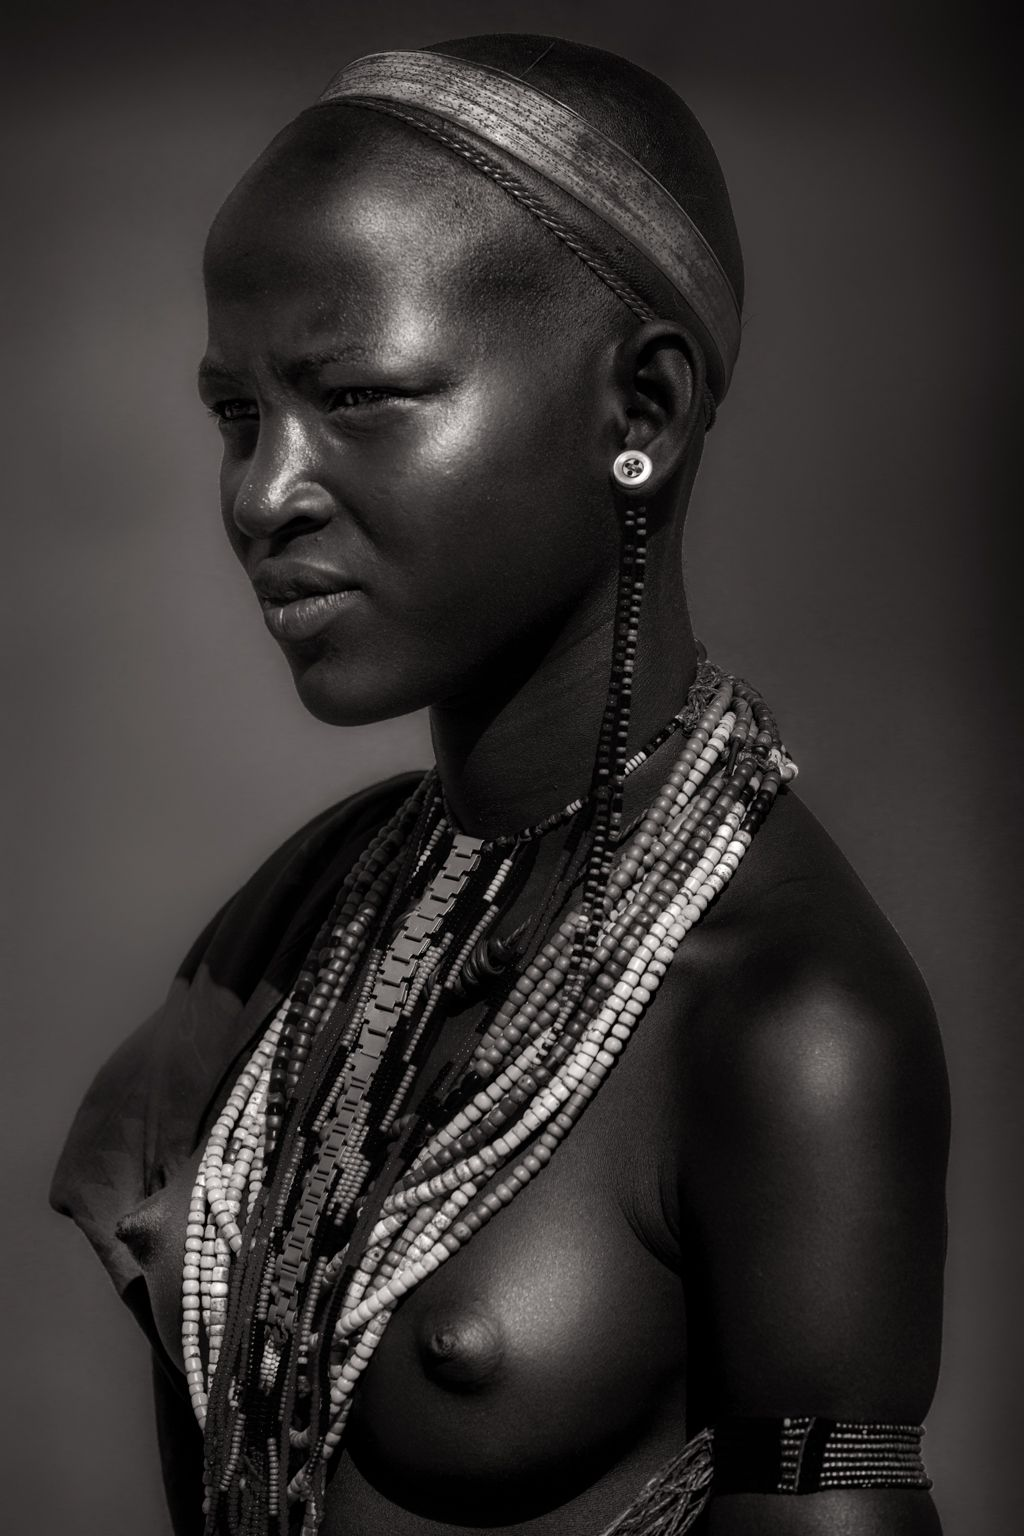 ETHIOPIA: Tribes of the Omo Valley-Mursi, Karo, Hamer & Arbore  Portraits